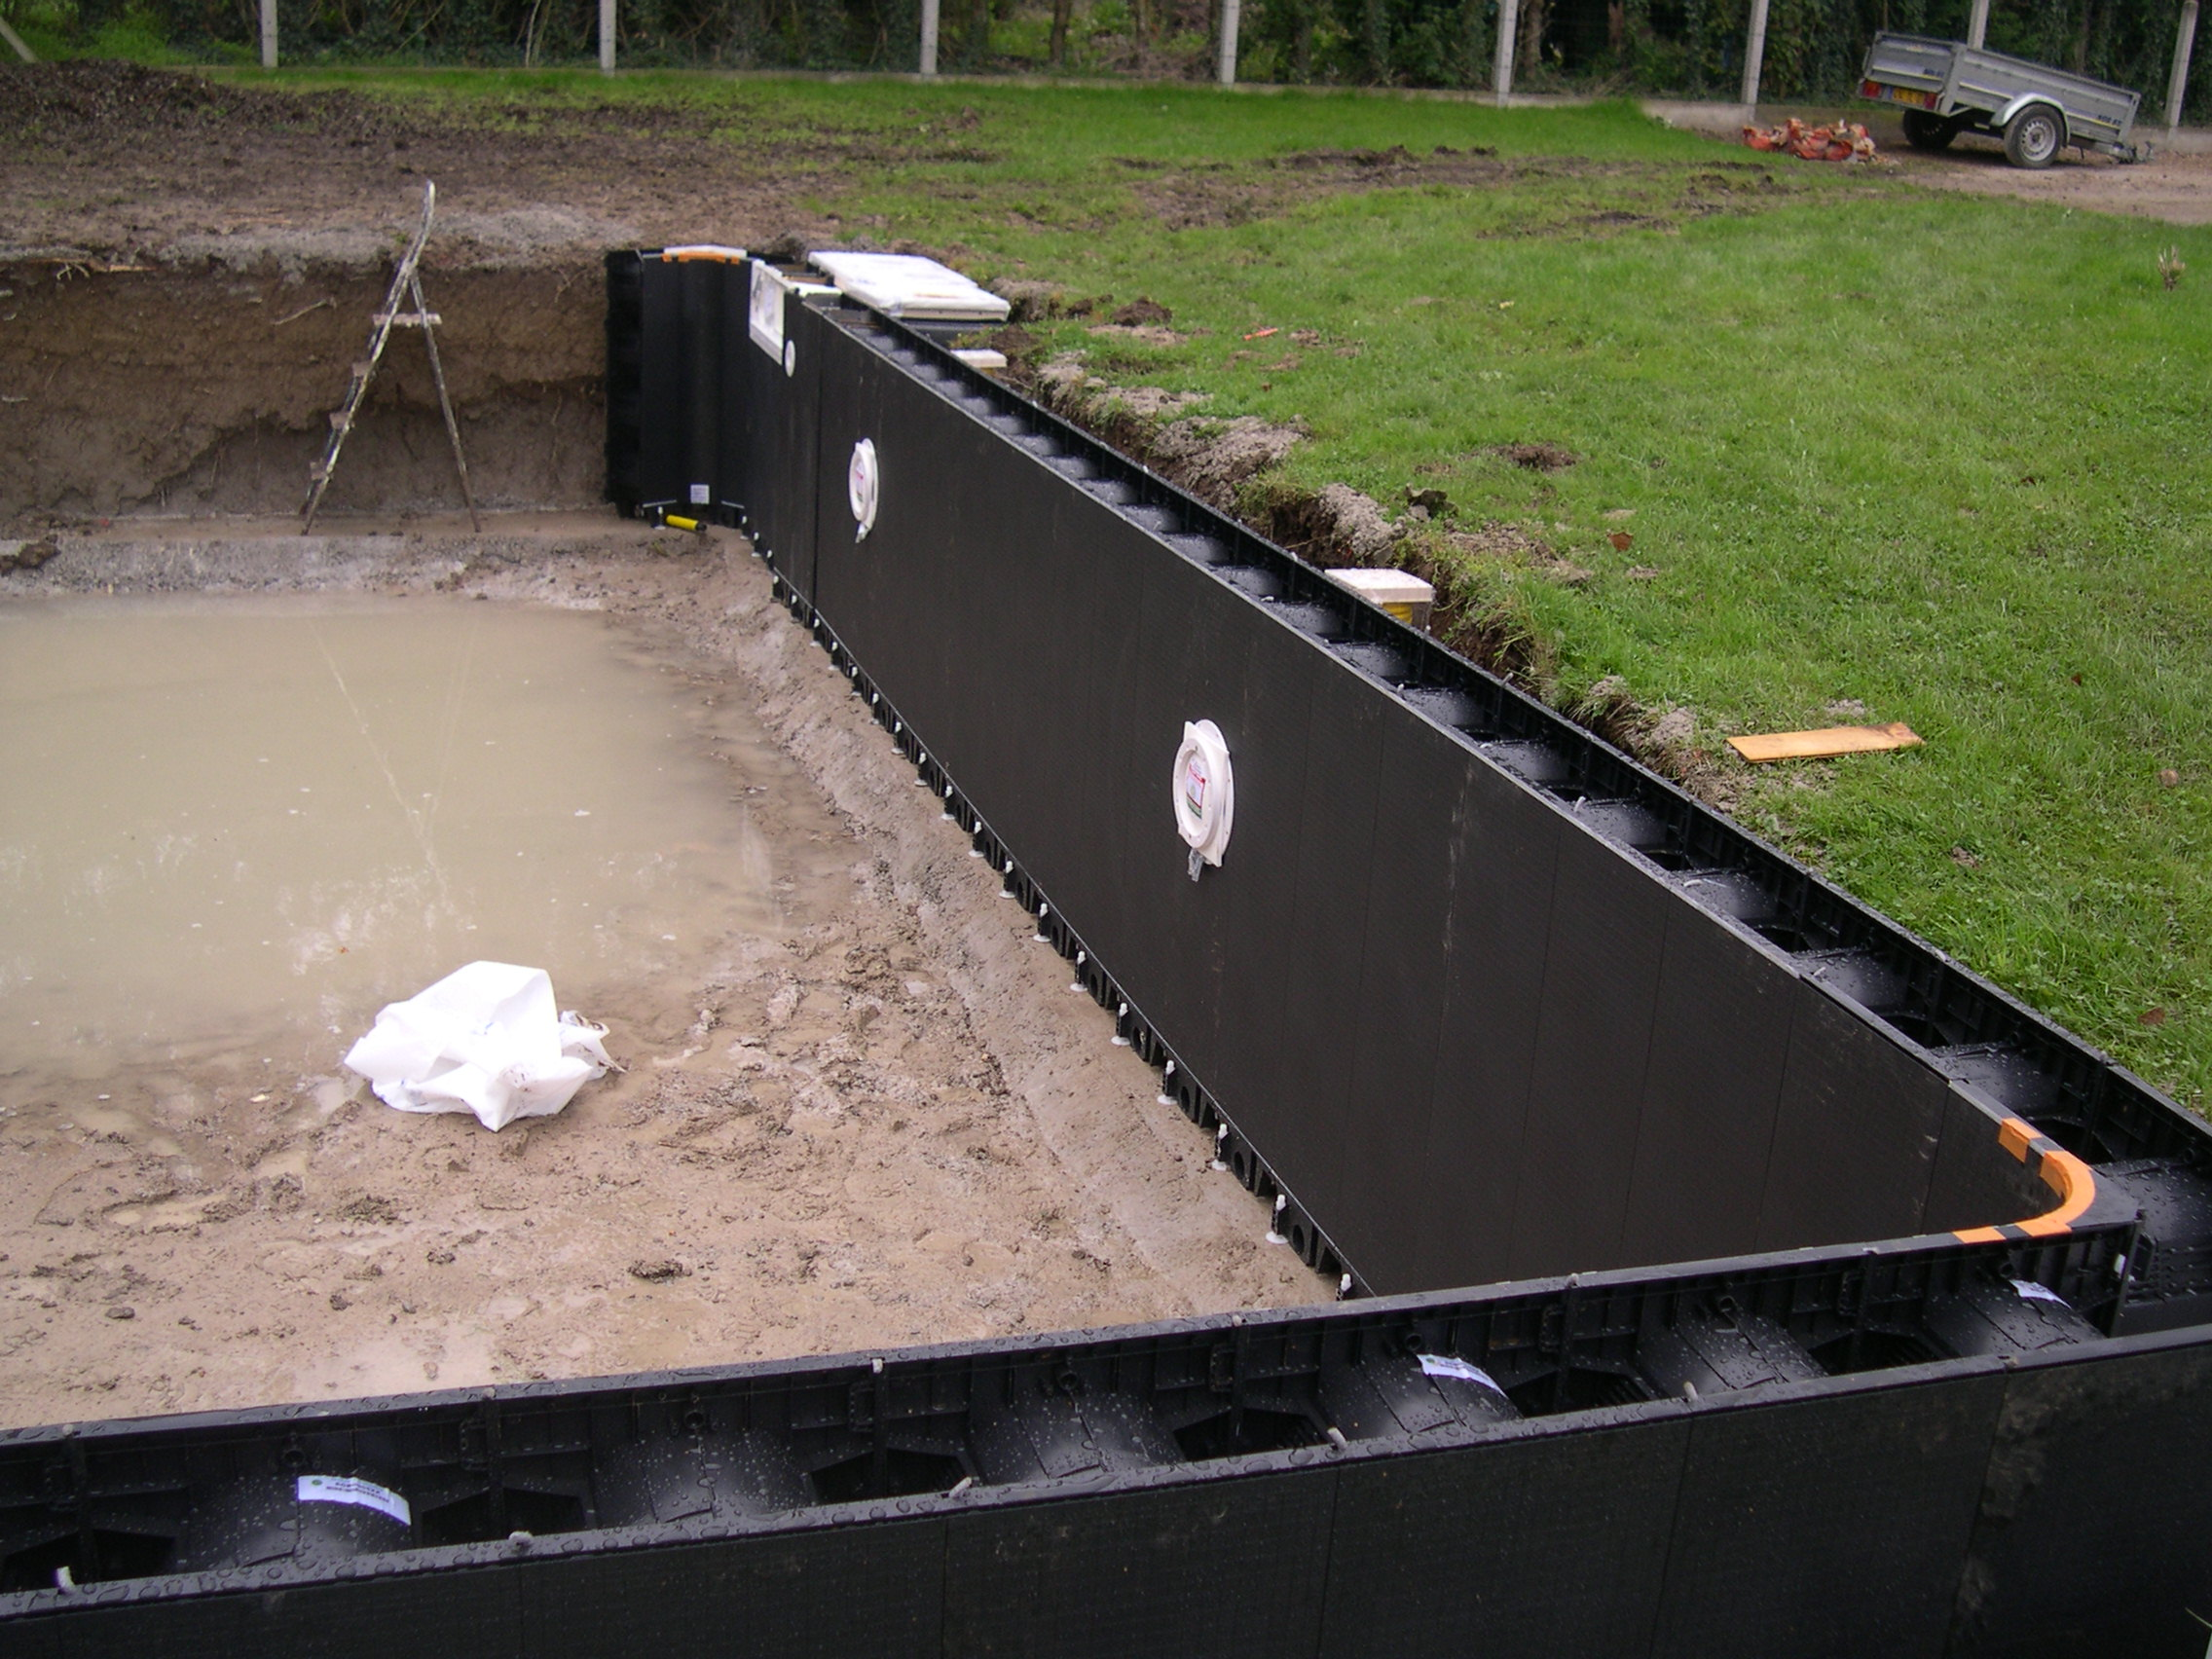 Structure piscine construction piscine magiline 9x for Construction de piscine 30